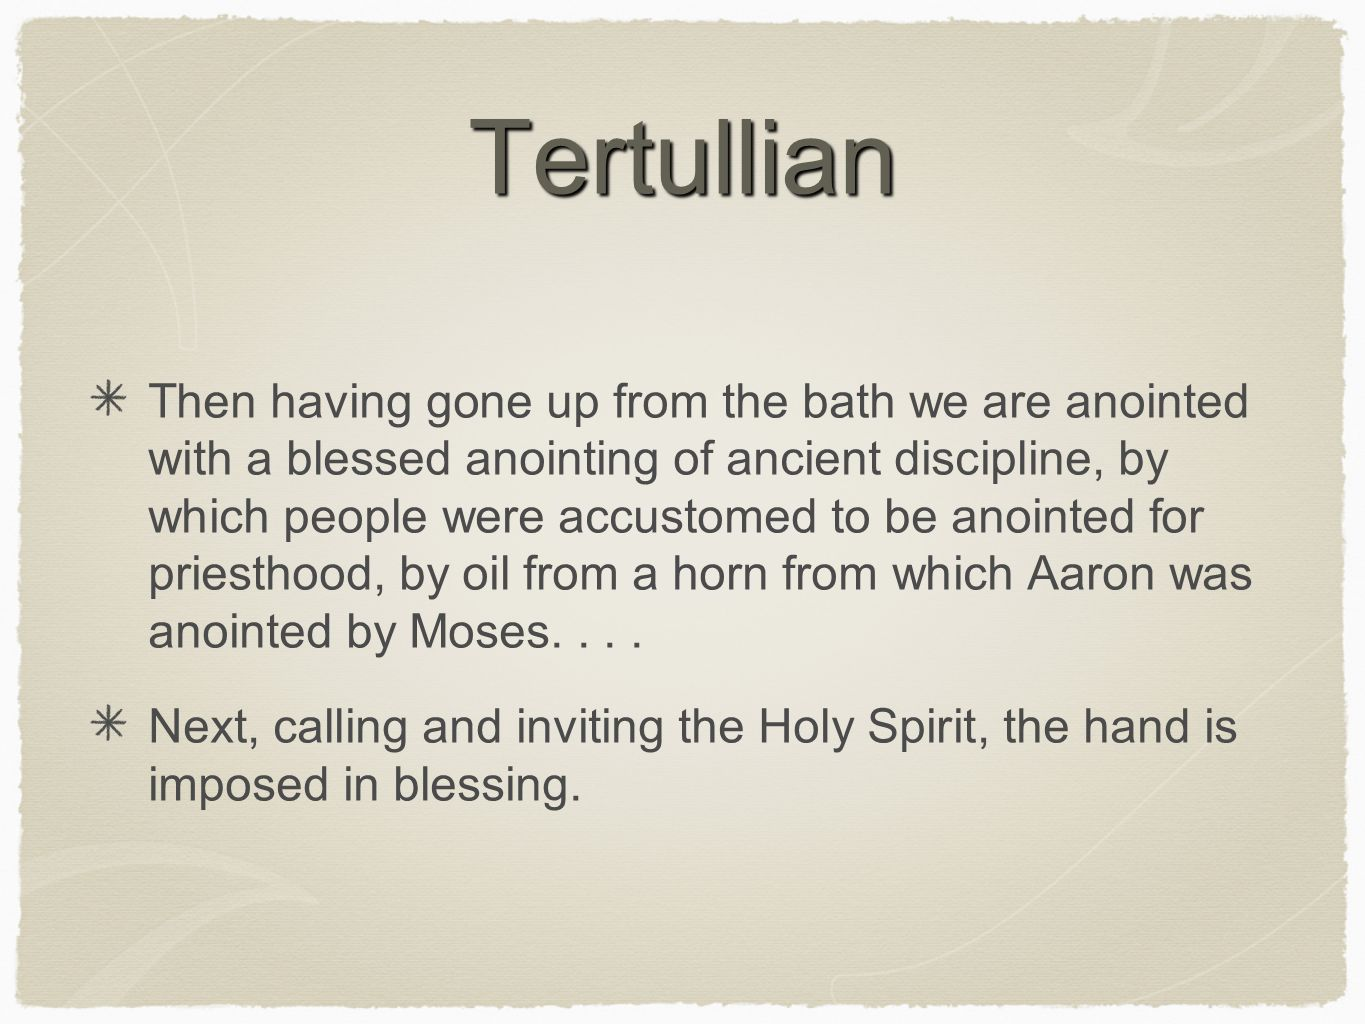 Tertullian Then having gone up from the bath we are anointed with a blessed anointing of ancient discipline, by which people were accustomed to be ano